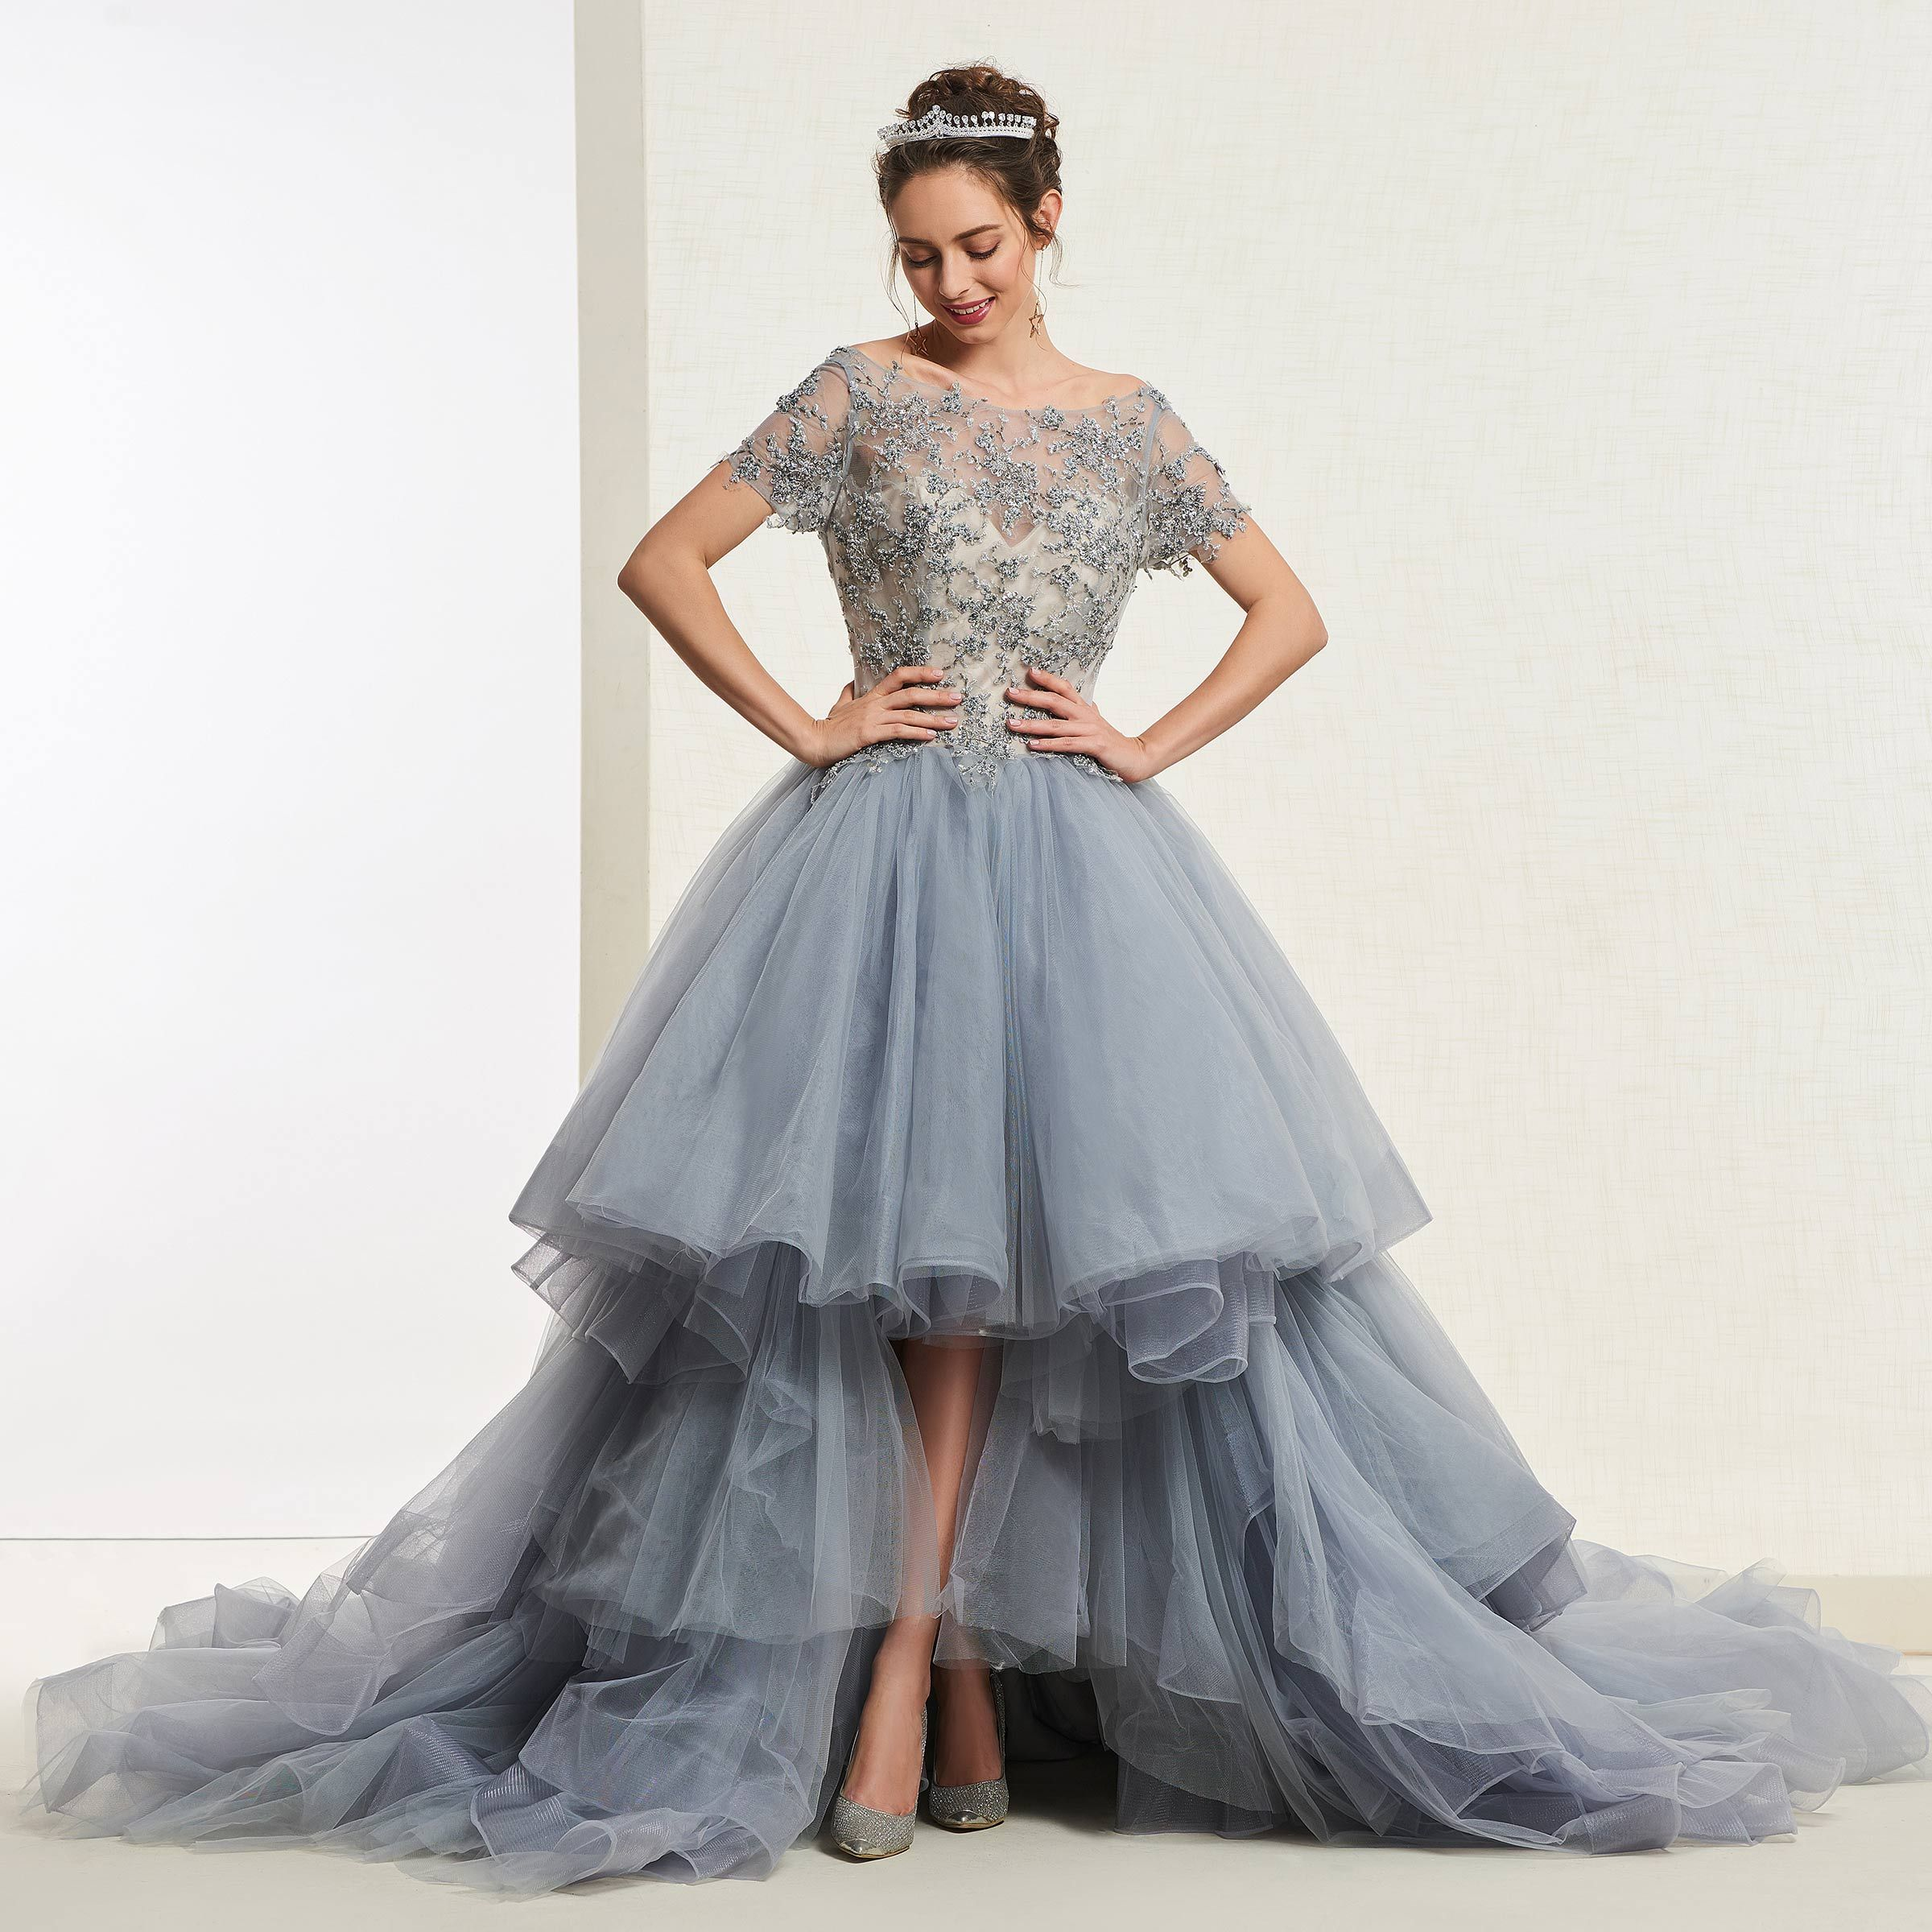 Ericdress Short Sleeves High Low Ball Gown Quinceanera Dress Cheap Quinceanera Dresses Ball Gowns Quince Dresses [ 2400 x 2400 Pixel ]